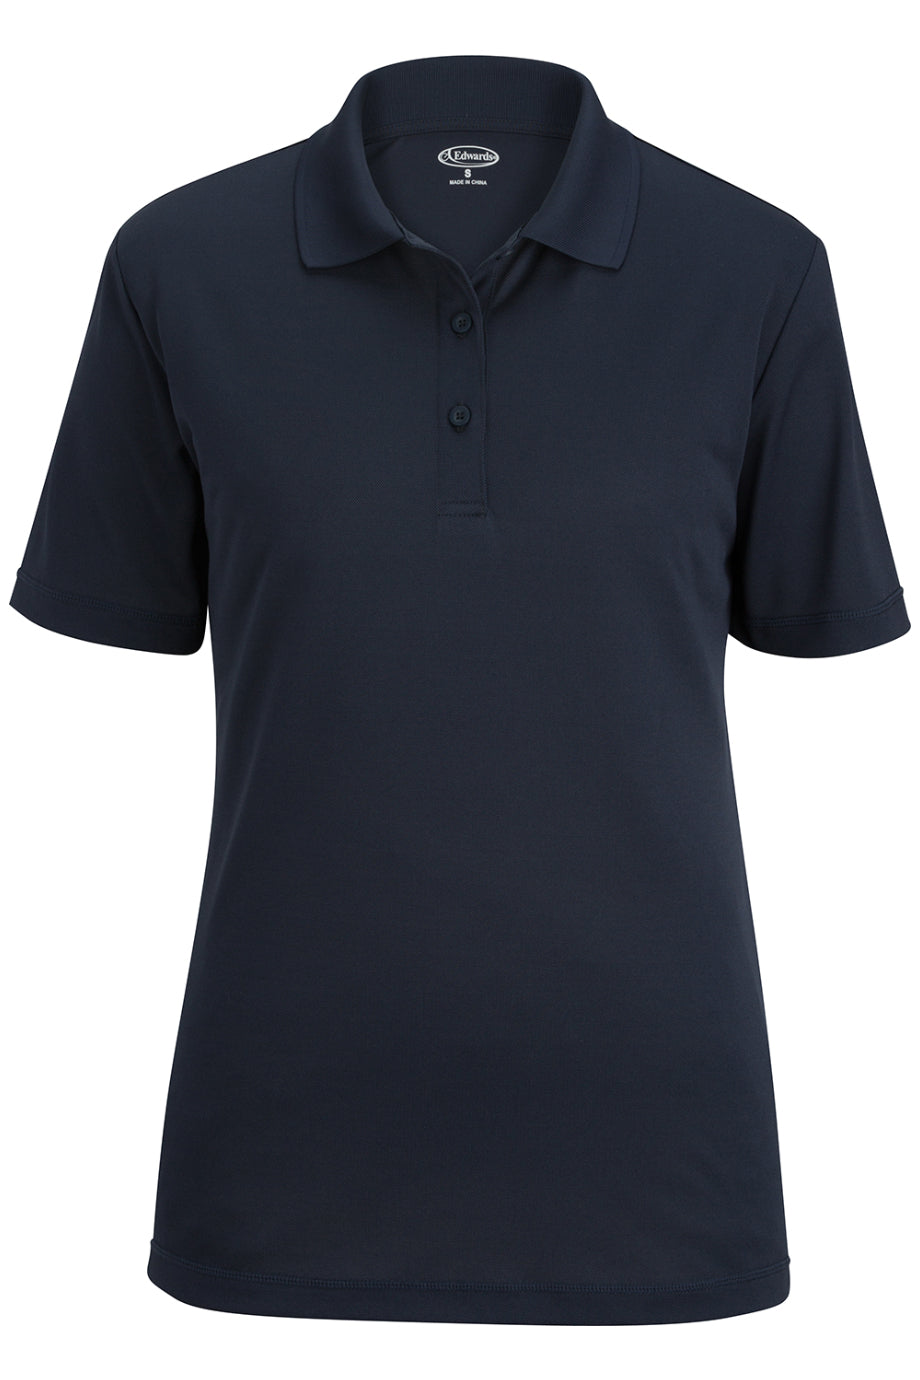 Edwards Ladies Durable Performance Polo